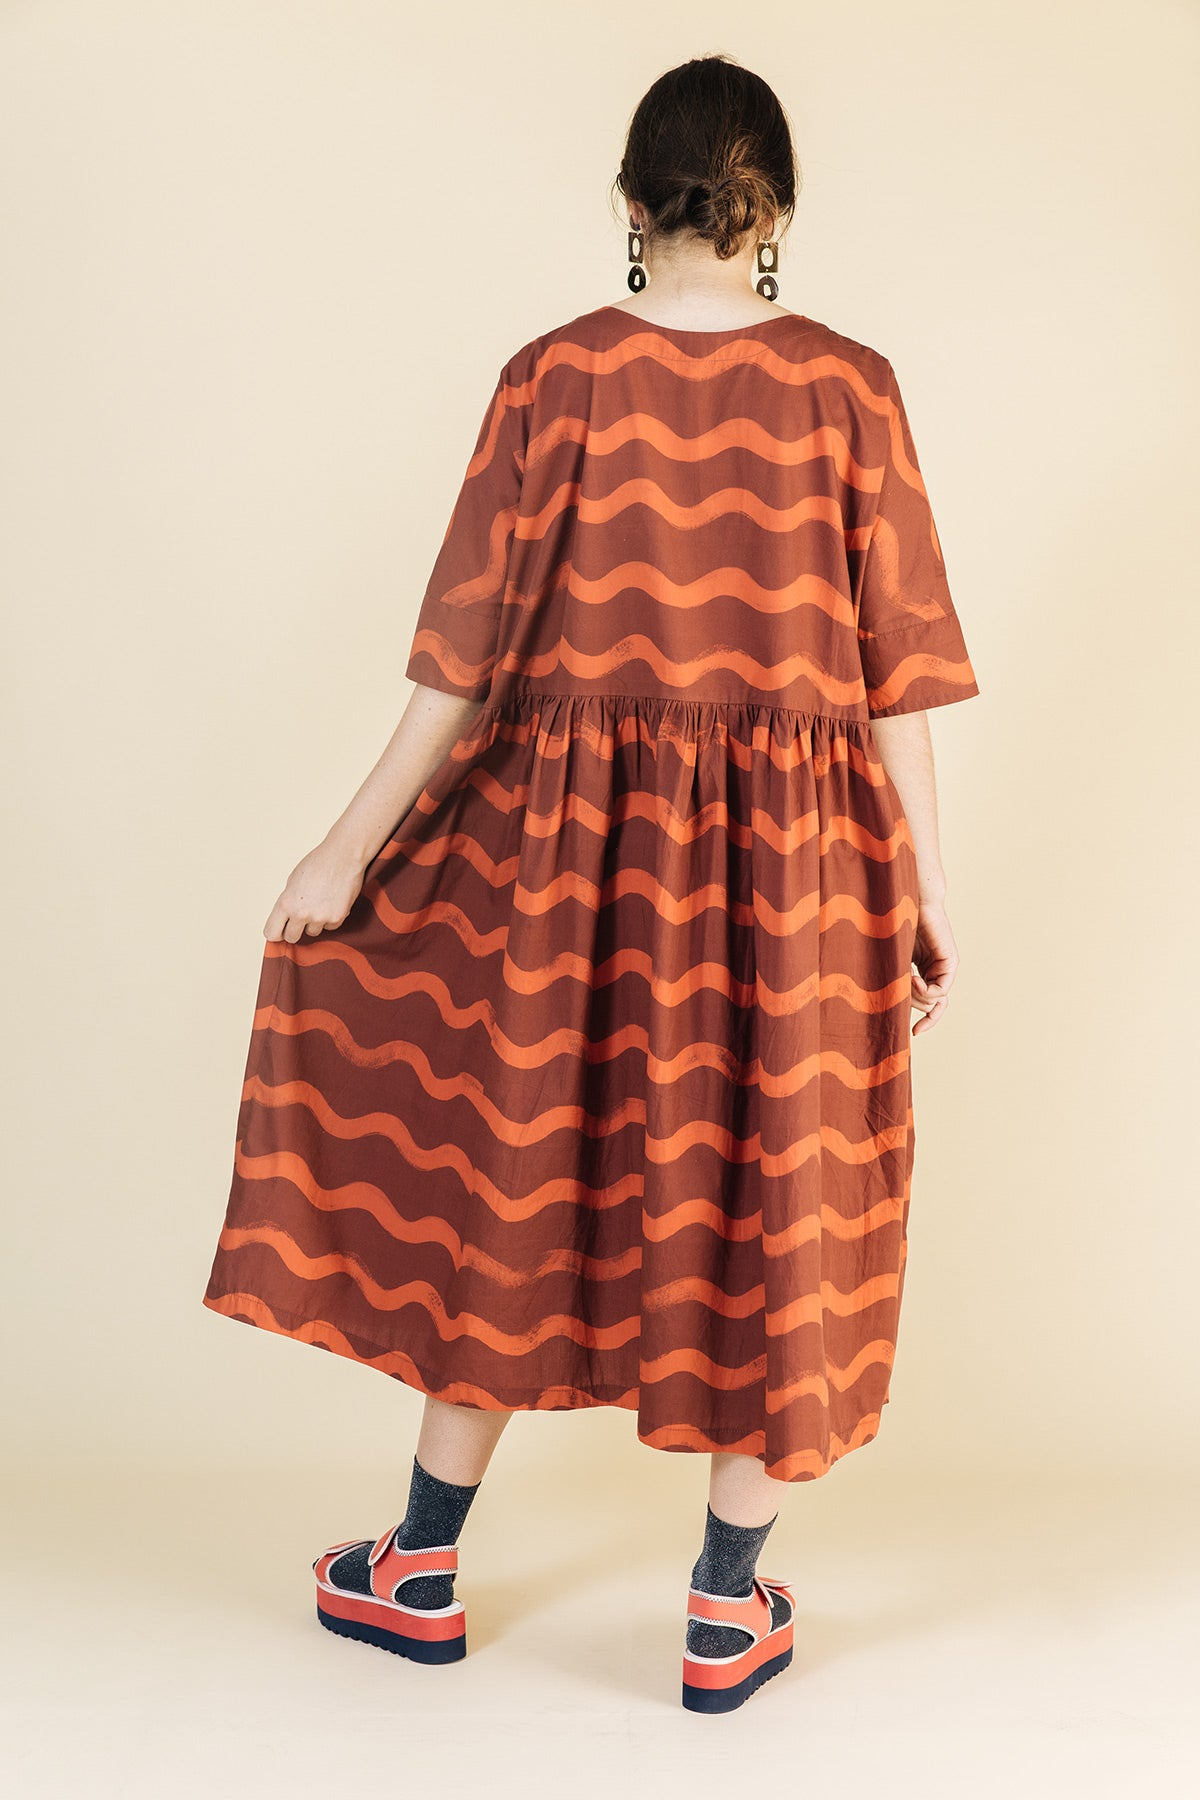 Long Tent Dress / Red Squiggles